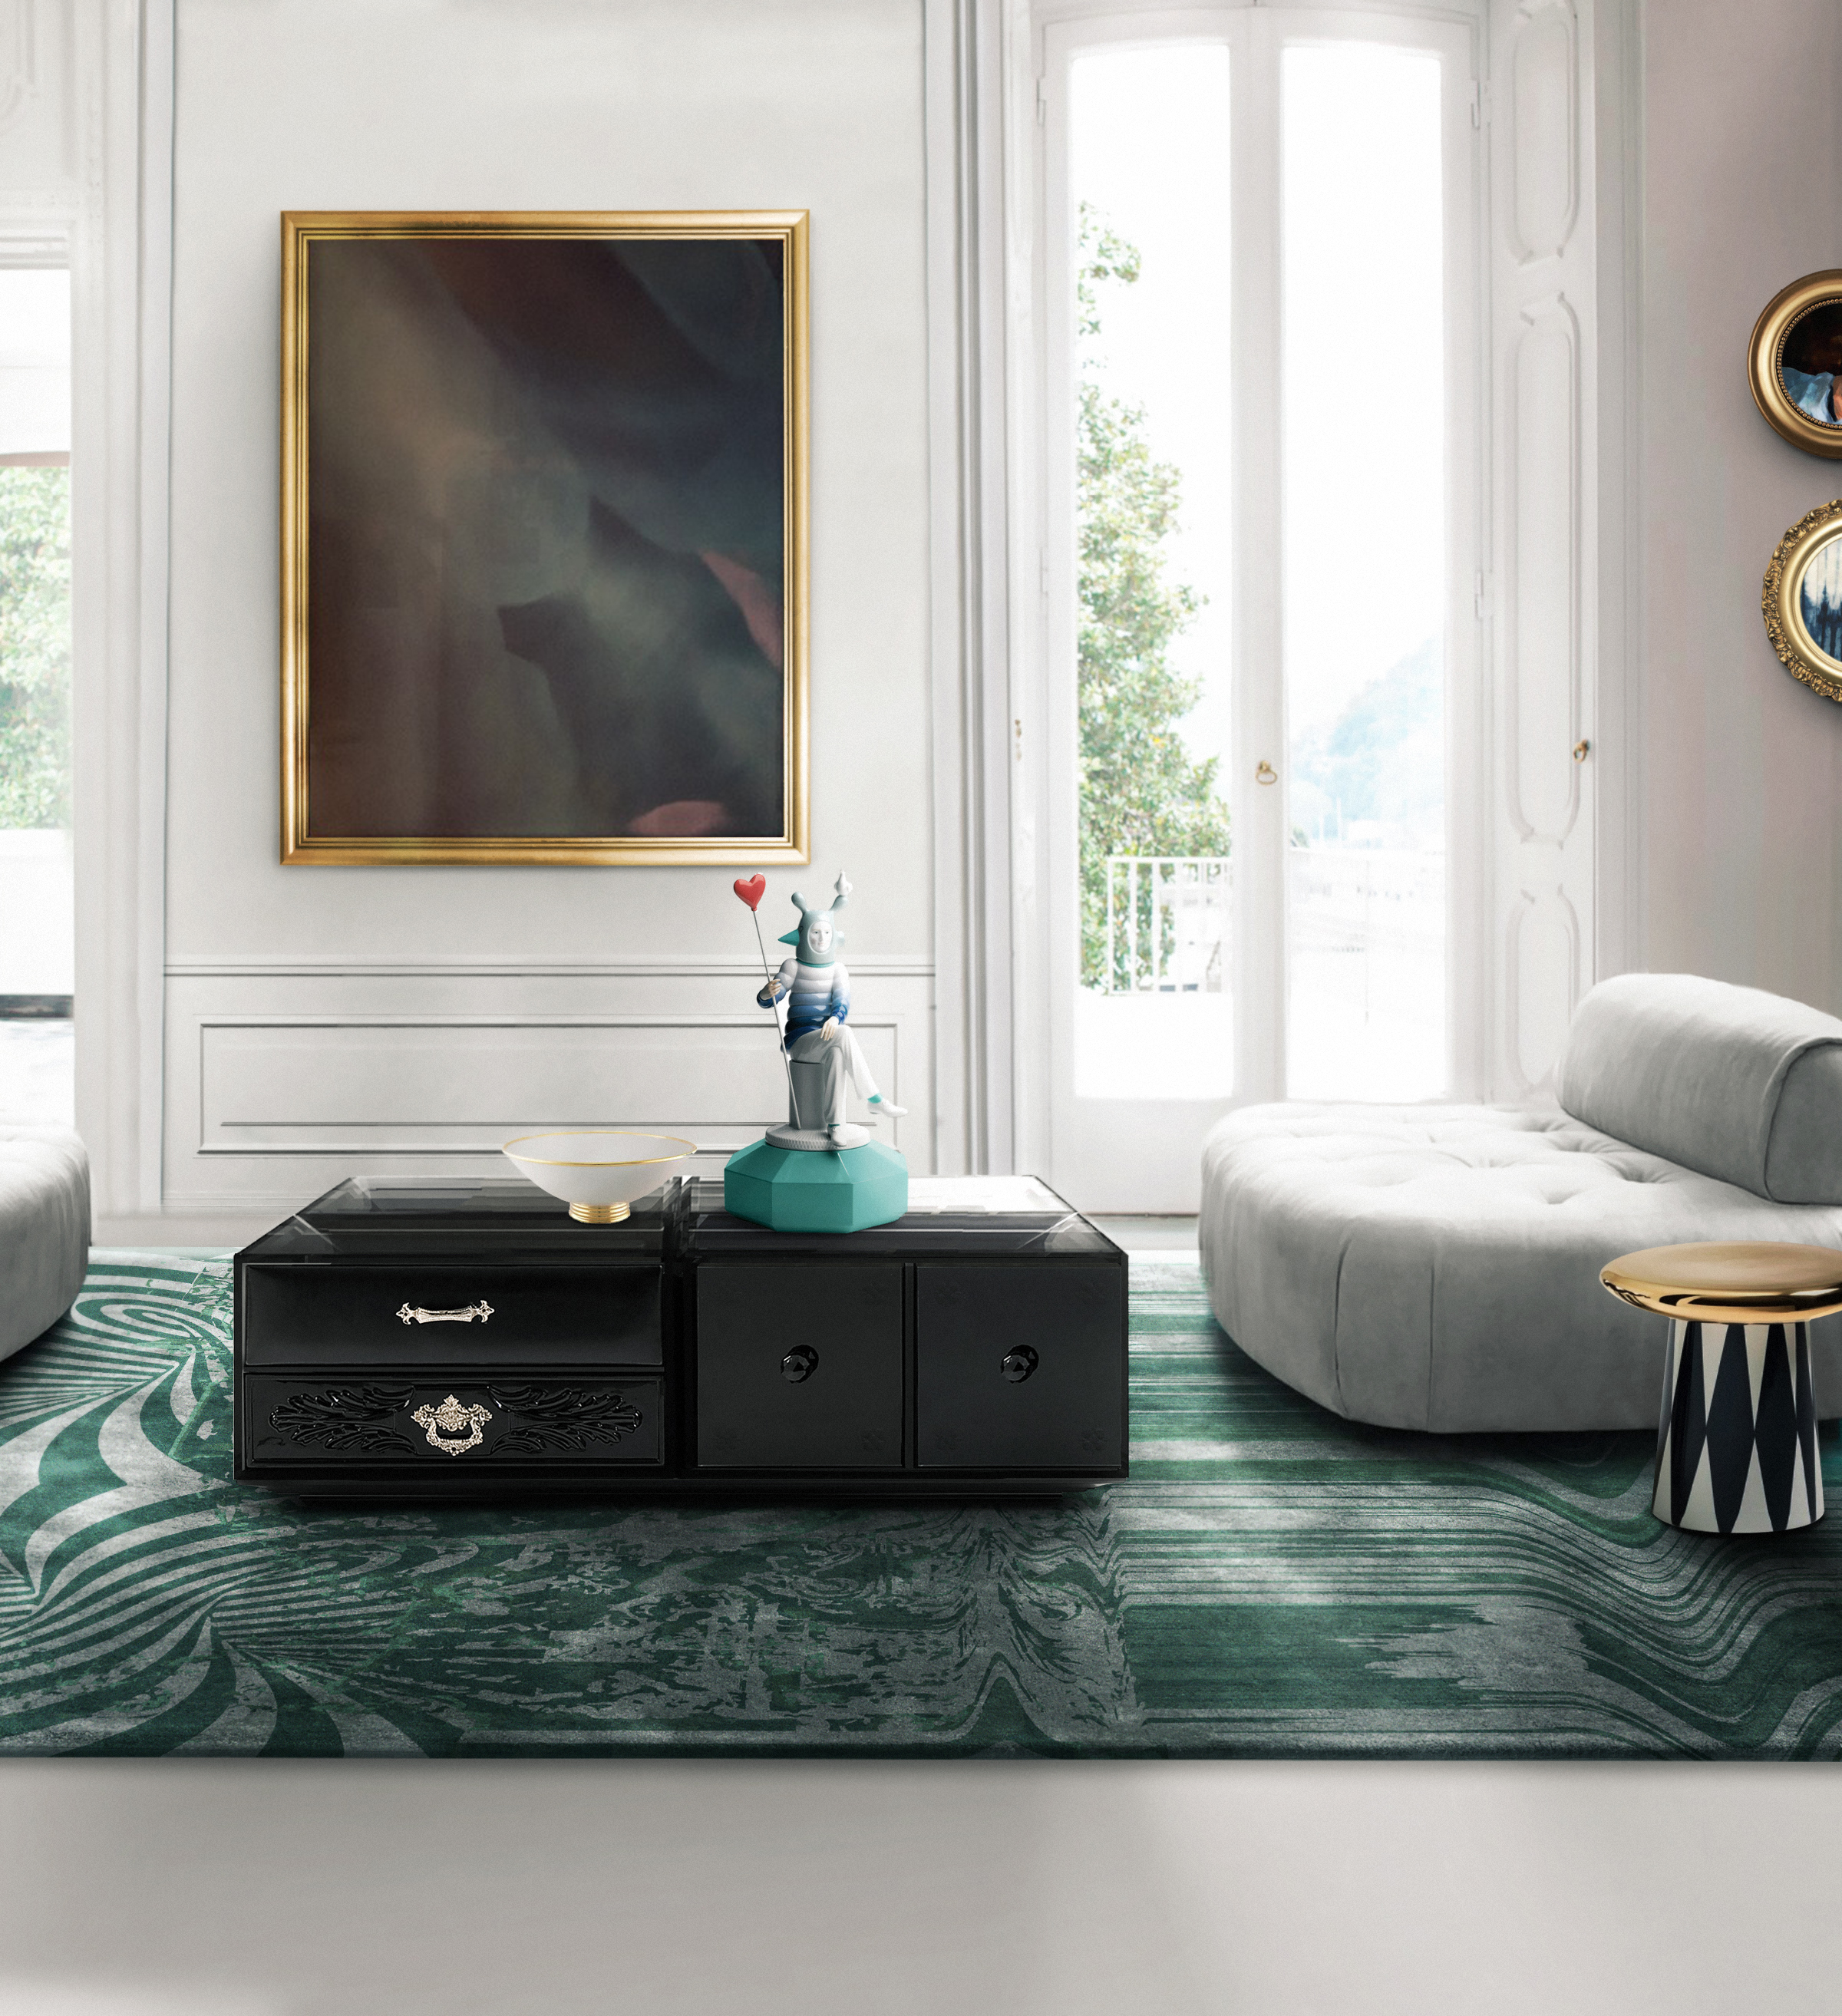 Explore The Most Inspiring Ambiances With Luxxu